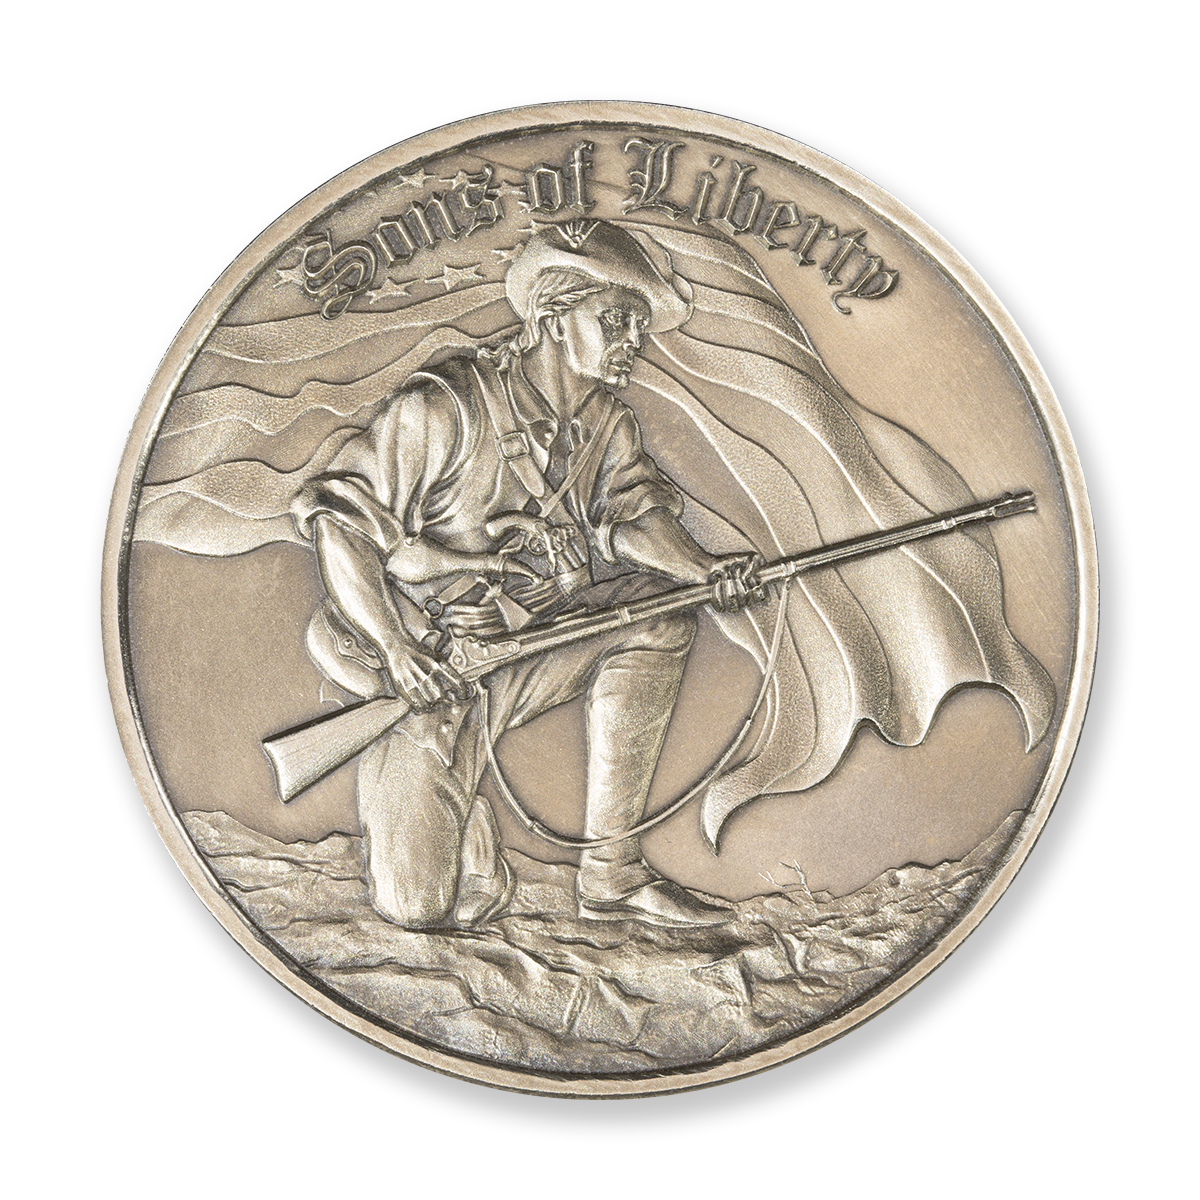 SONS OF LIBERTY, LIBERTY TREE – 2 TROY OUNCE – 50MM (ONLY 500 MINTED)